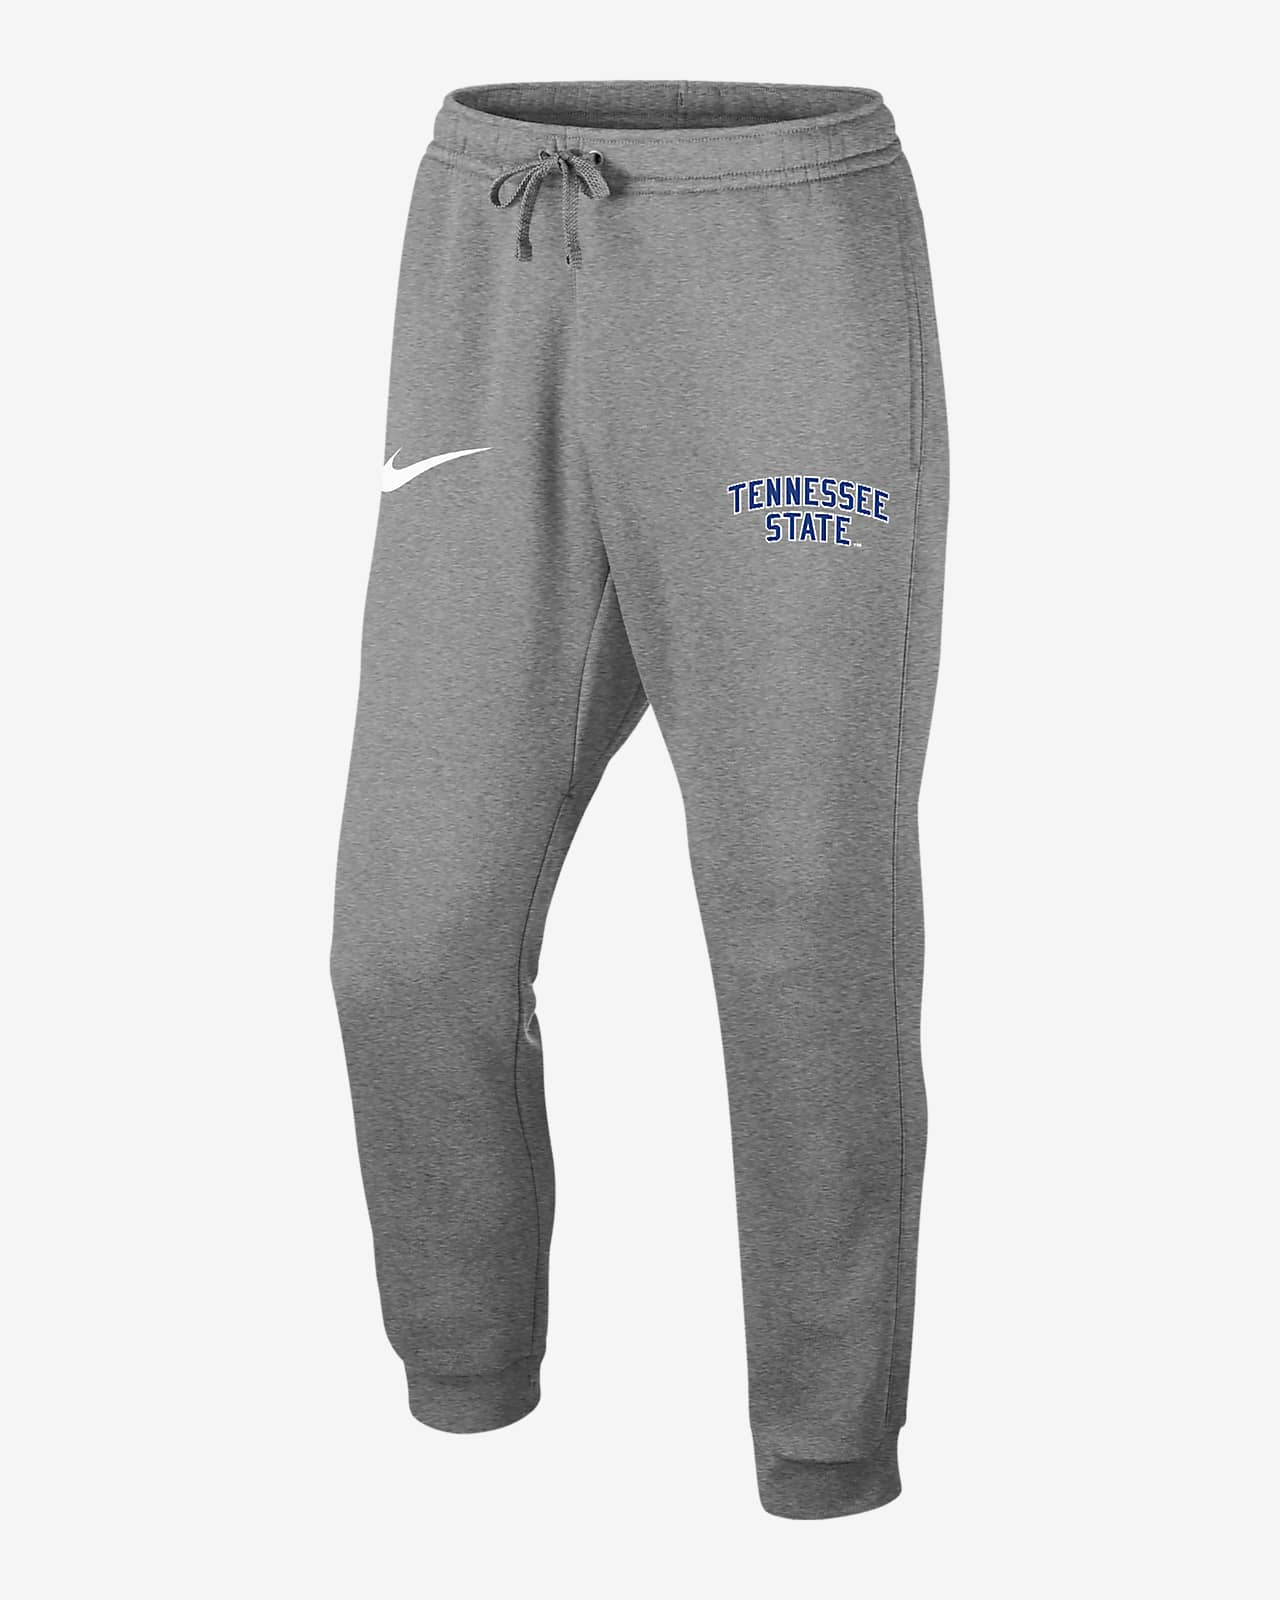 Nike College Club Fleece (Tennessee State) Joggers